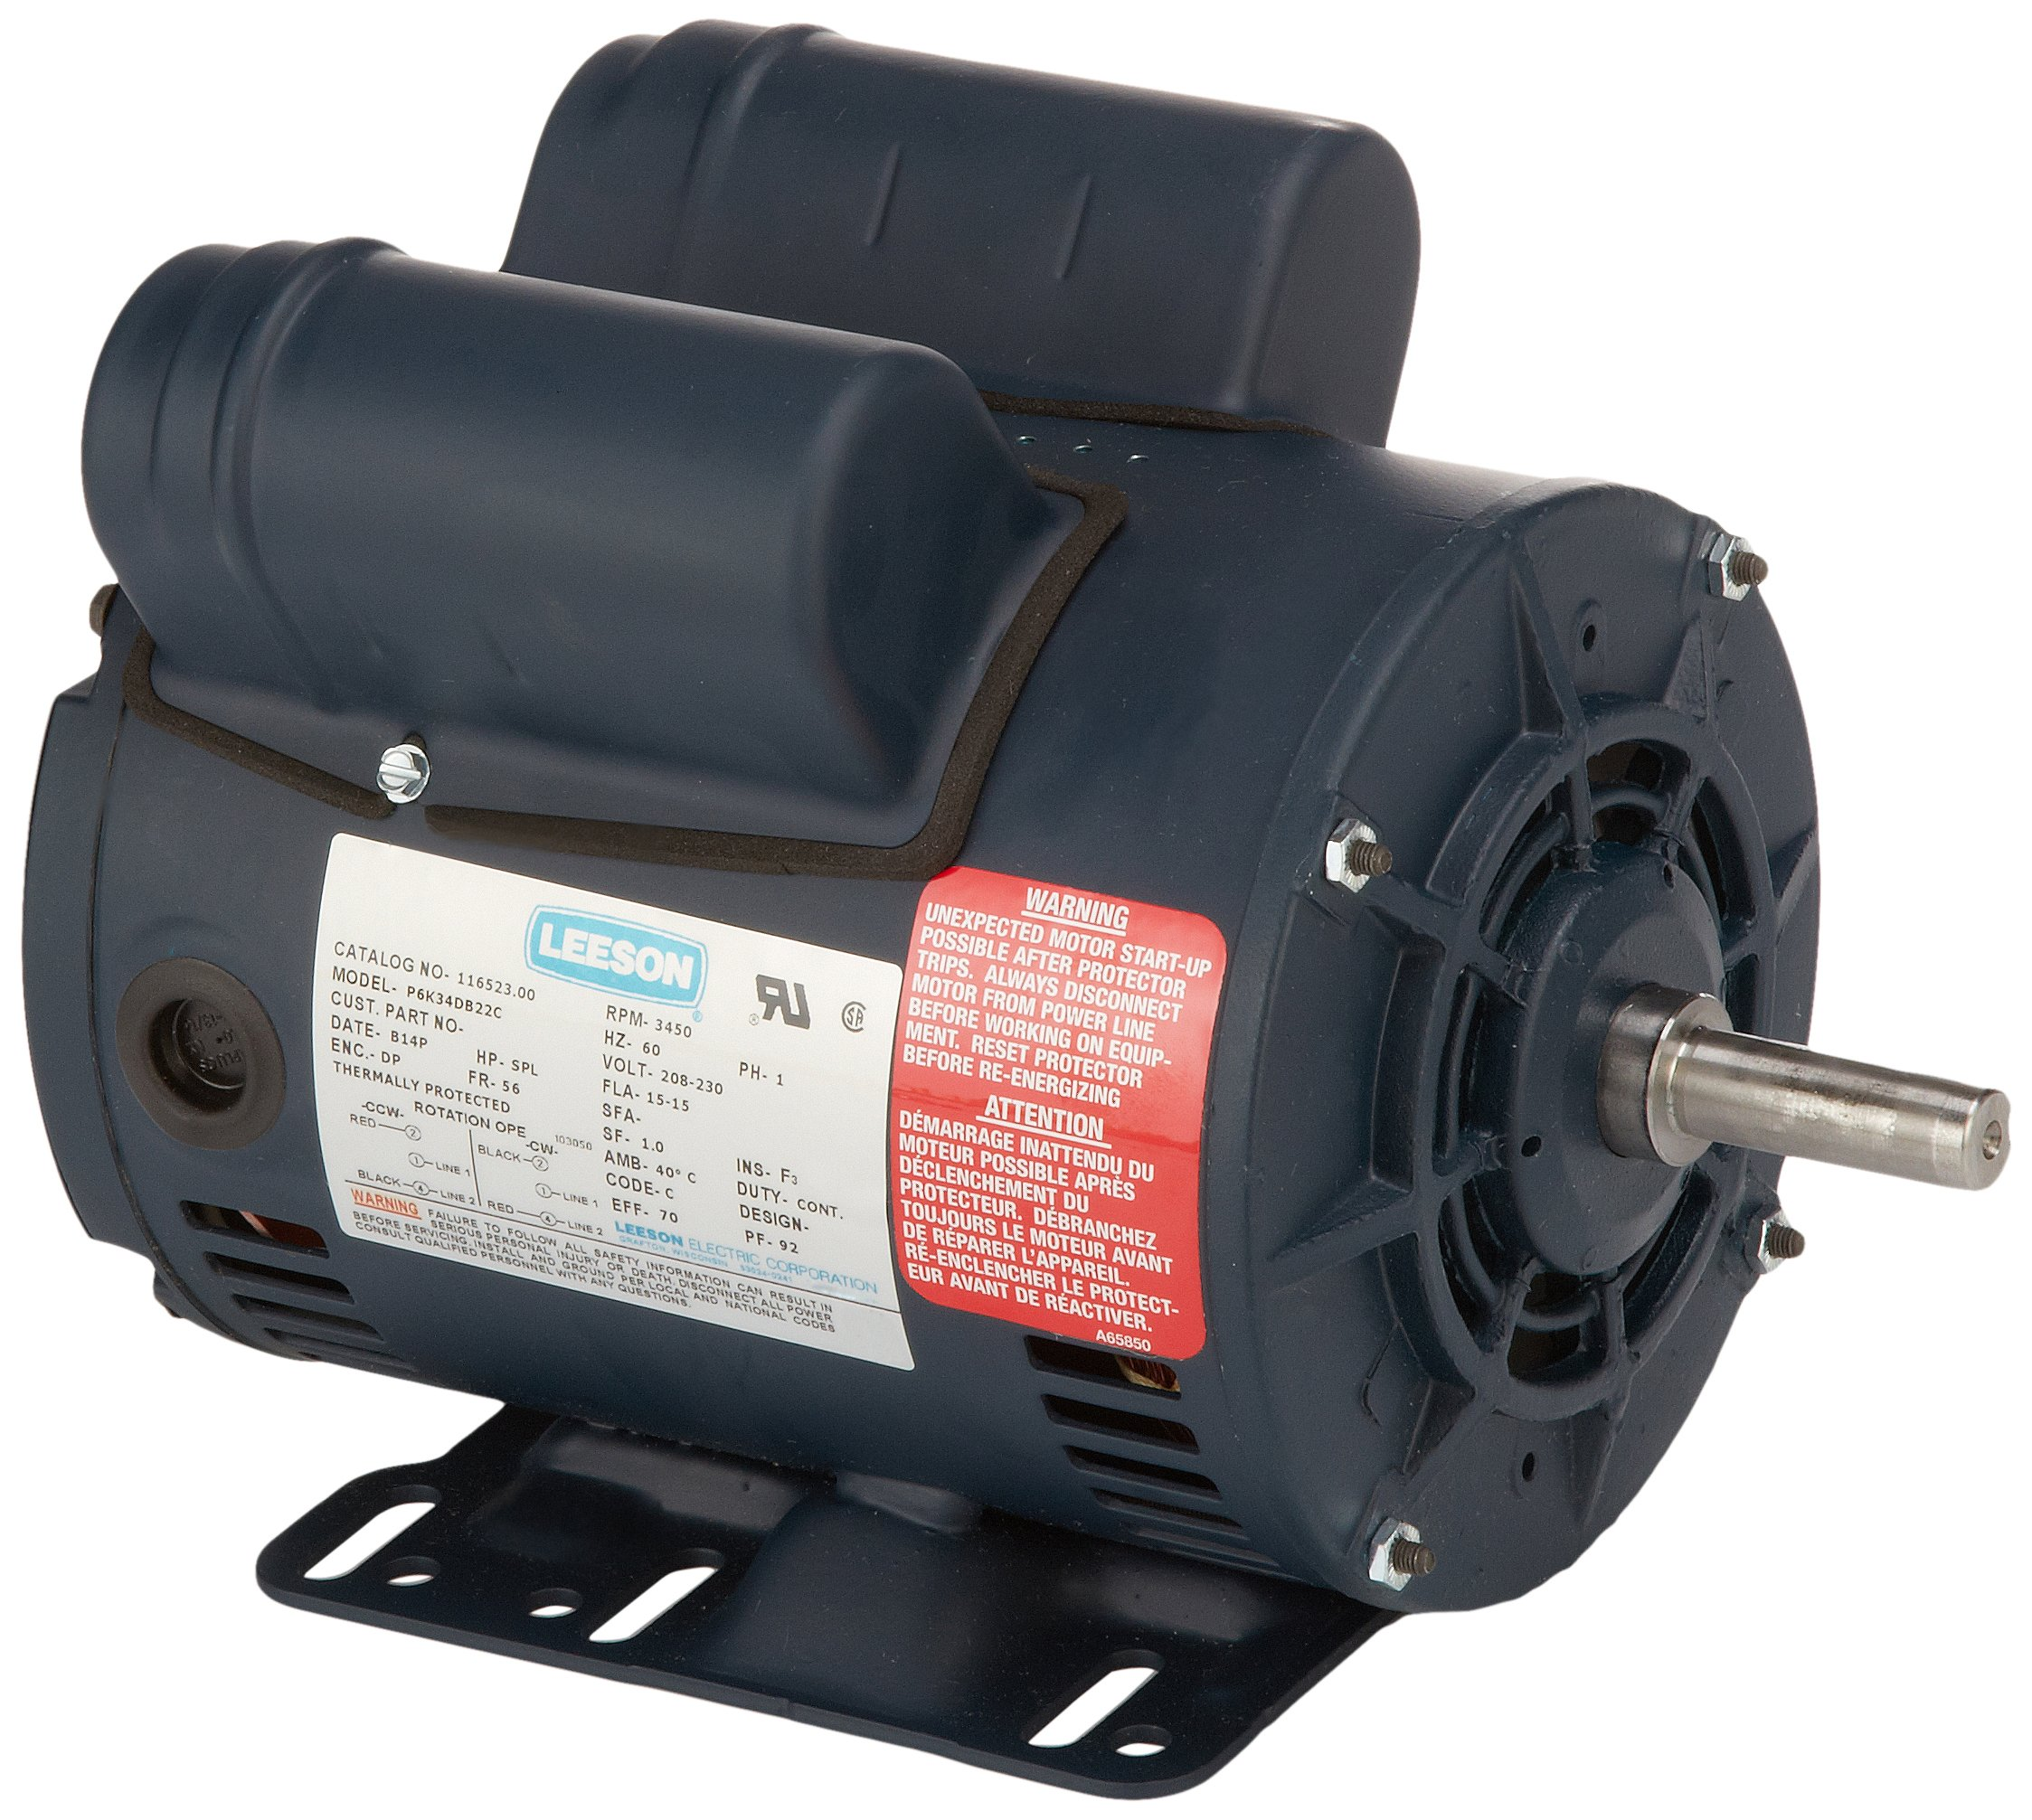 Leeson 116523.00 Compressor Duty ODP Motor, 1 Phase, 56 Frame, Rigid Mounting, 5SPLHP, 3600 RPM, 208-230V Voltage, 60Hz Fequency by Leeson